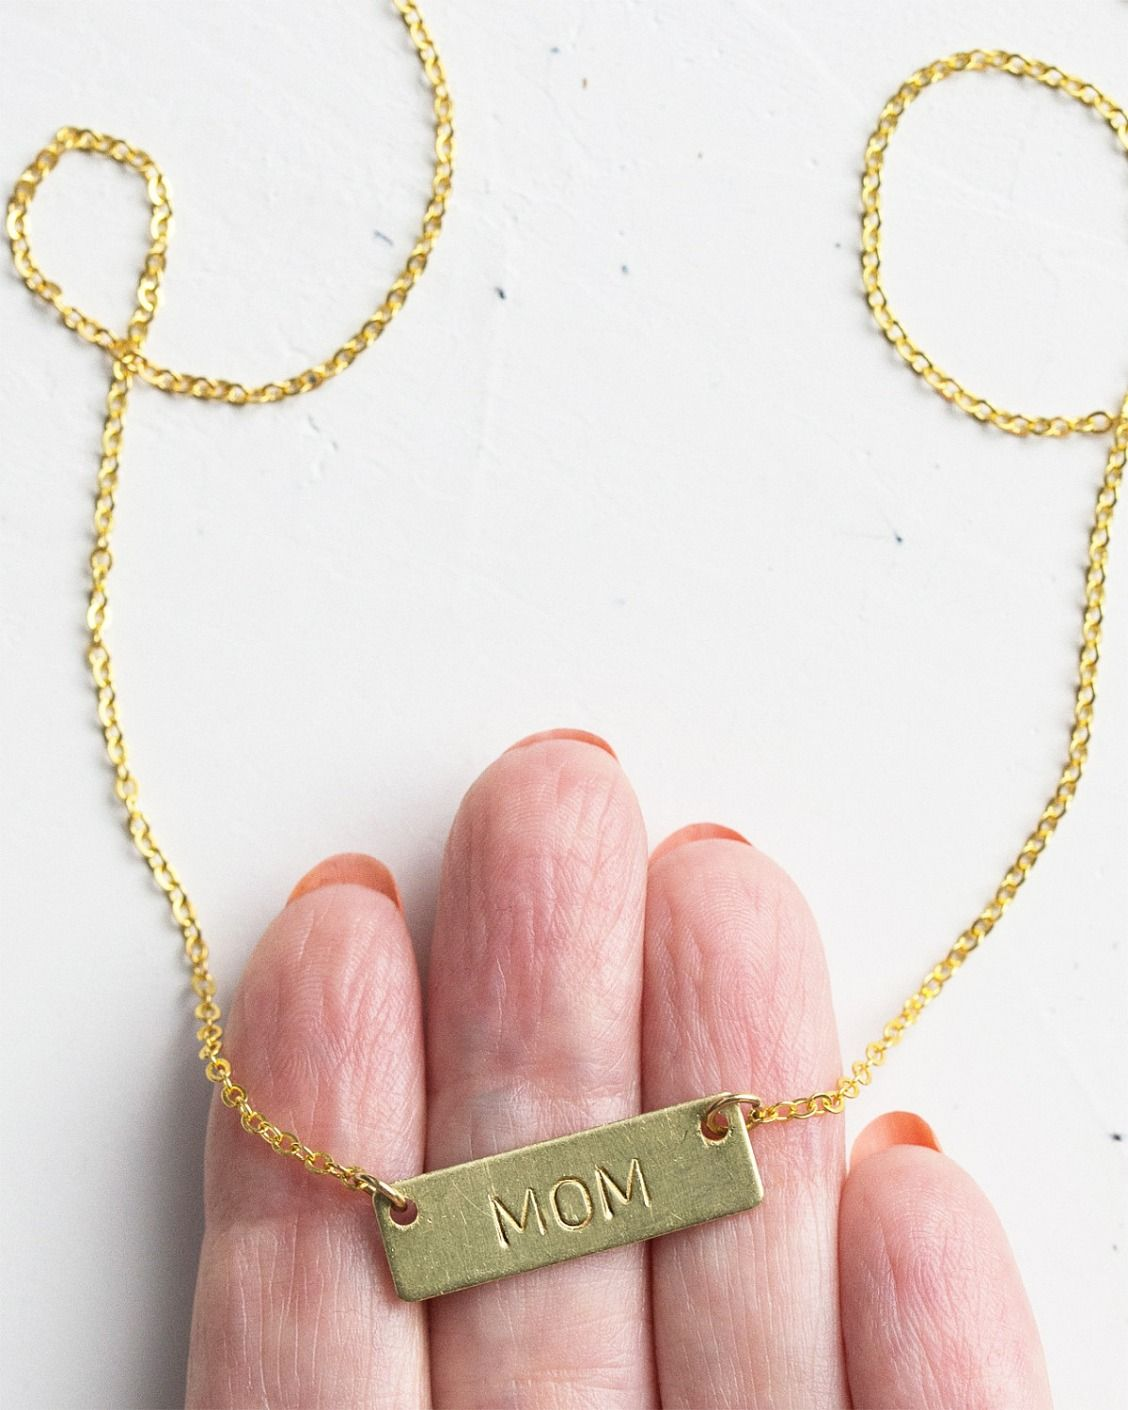 Learn how to make a personalized bar necklace in this metal-stamping tutorial. Craft the perfect gift.